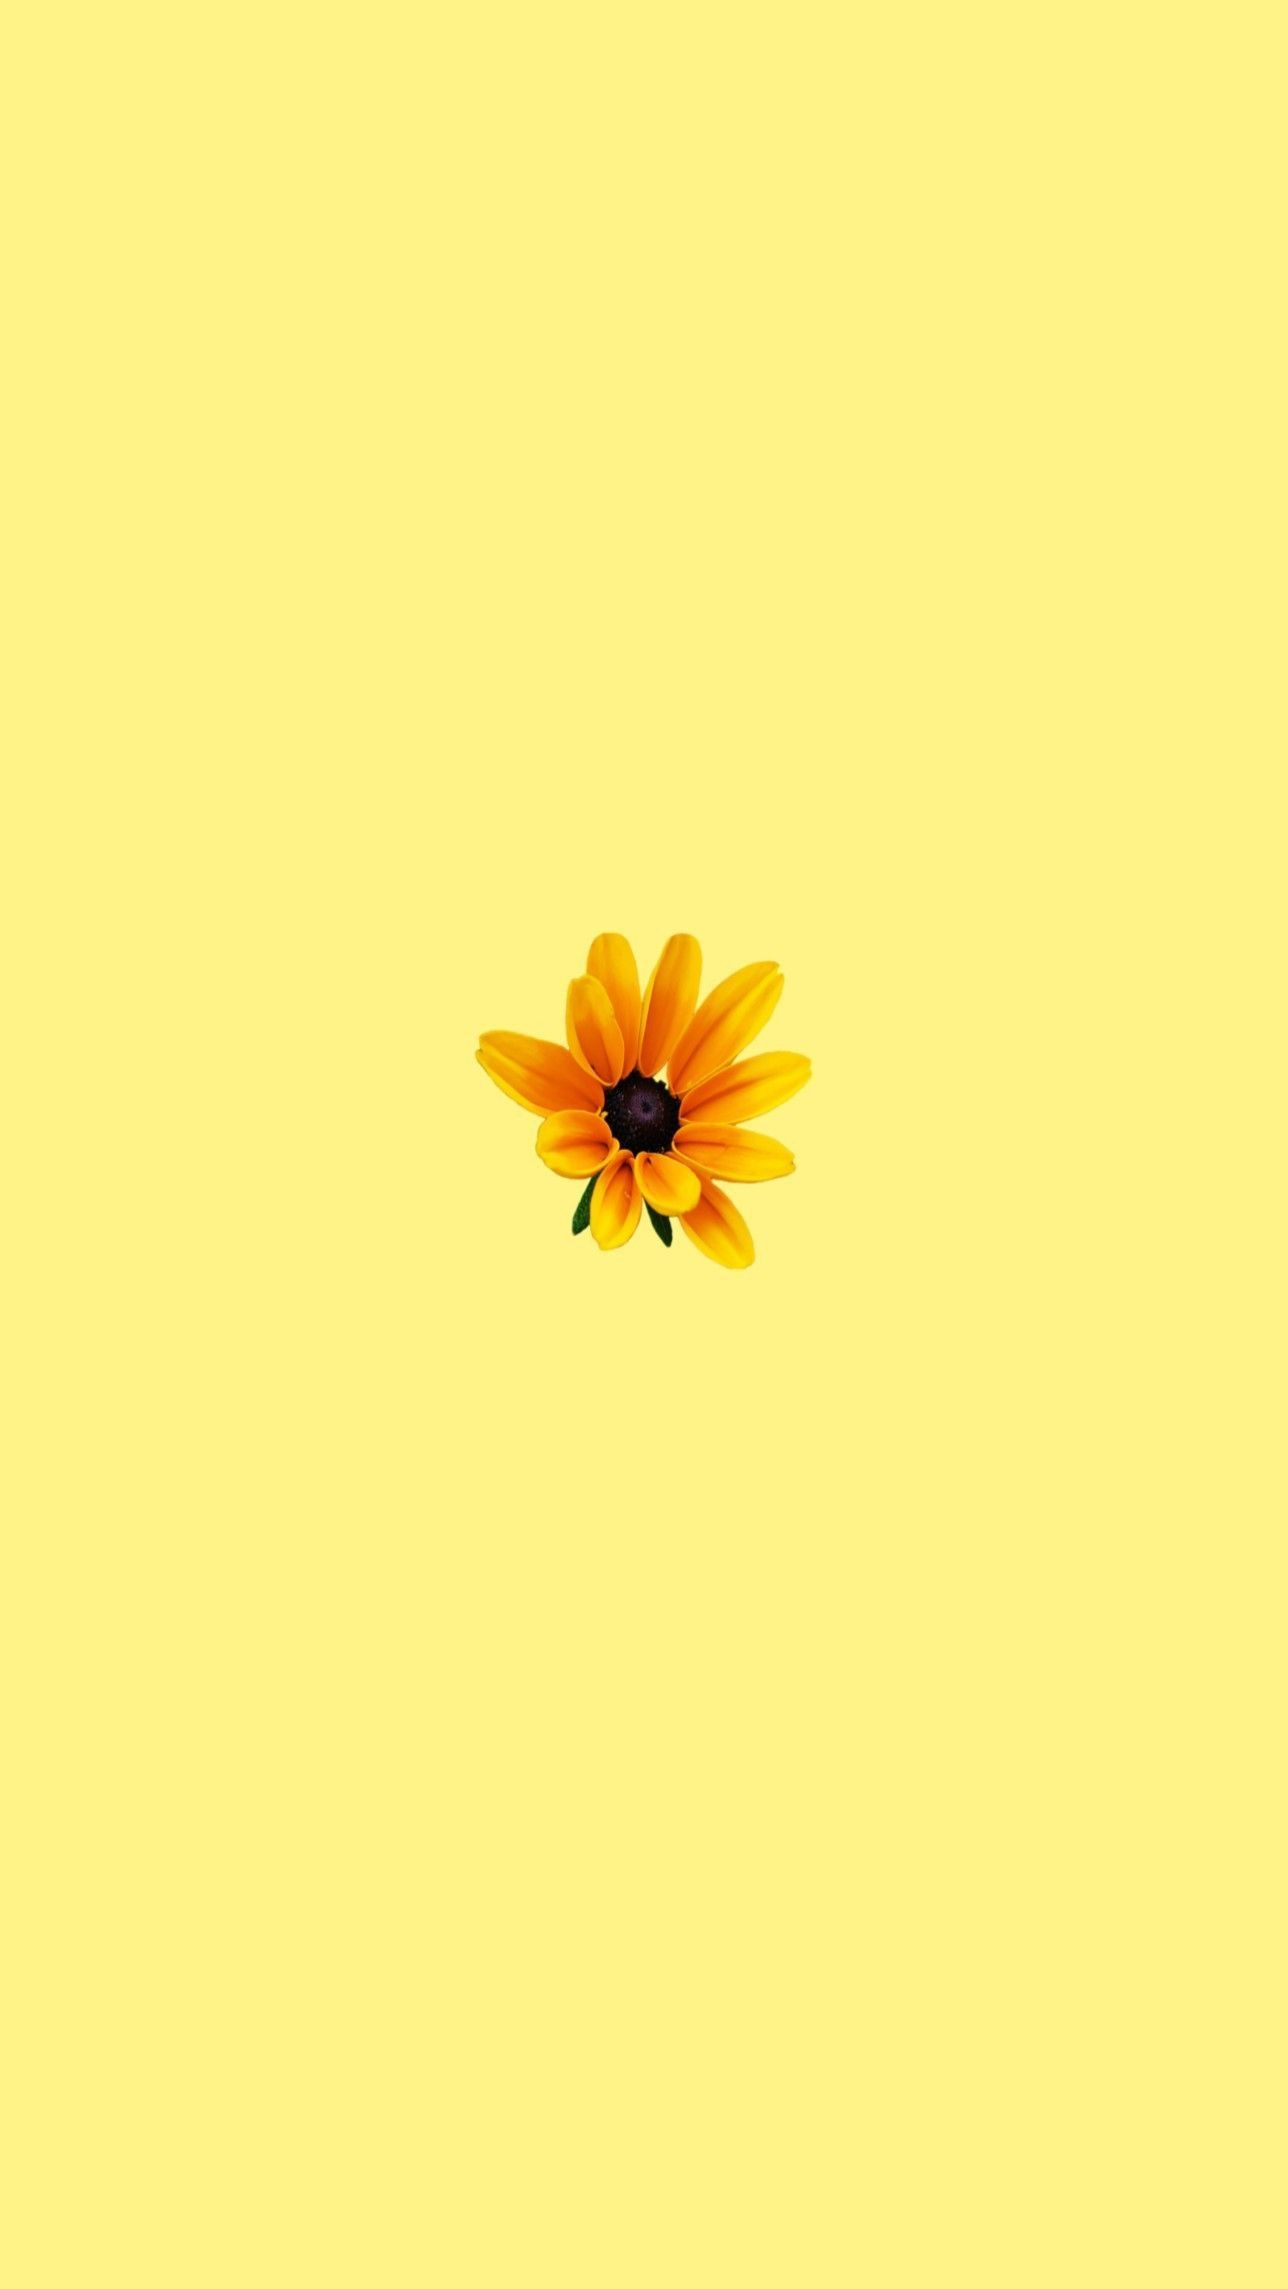 Yellow Wallpaper Aesthetic In 2019 Iphone Wallpaper Wallpaper Cute Pastel Wall Yellow Aesthetic Pastel Iphone Wallpaper Yellow Sunflower Wallpaper